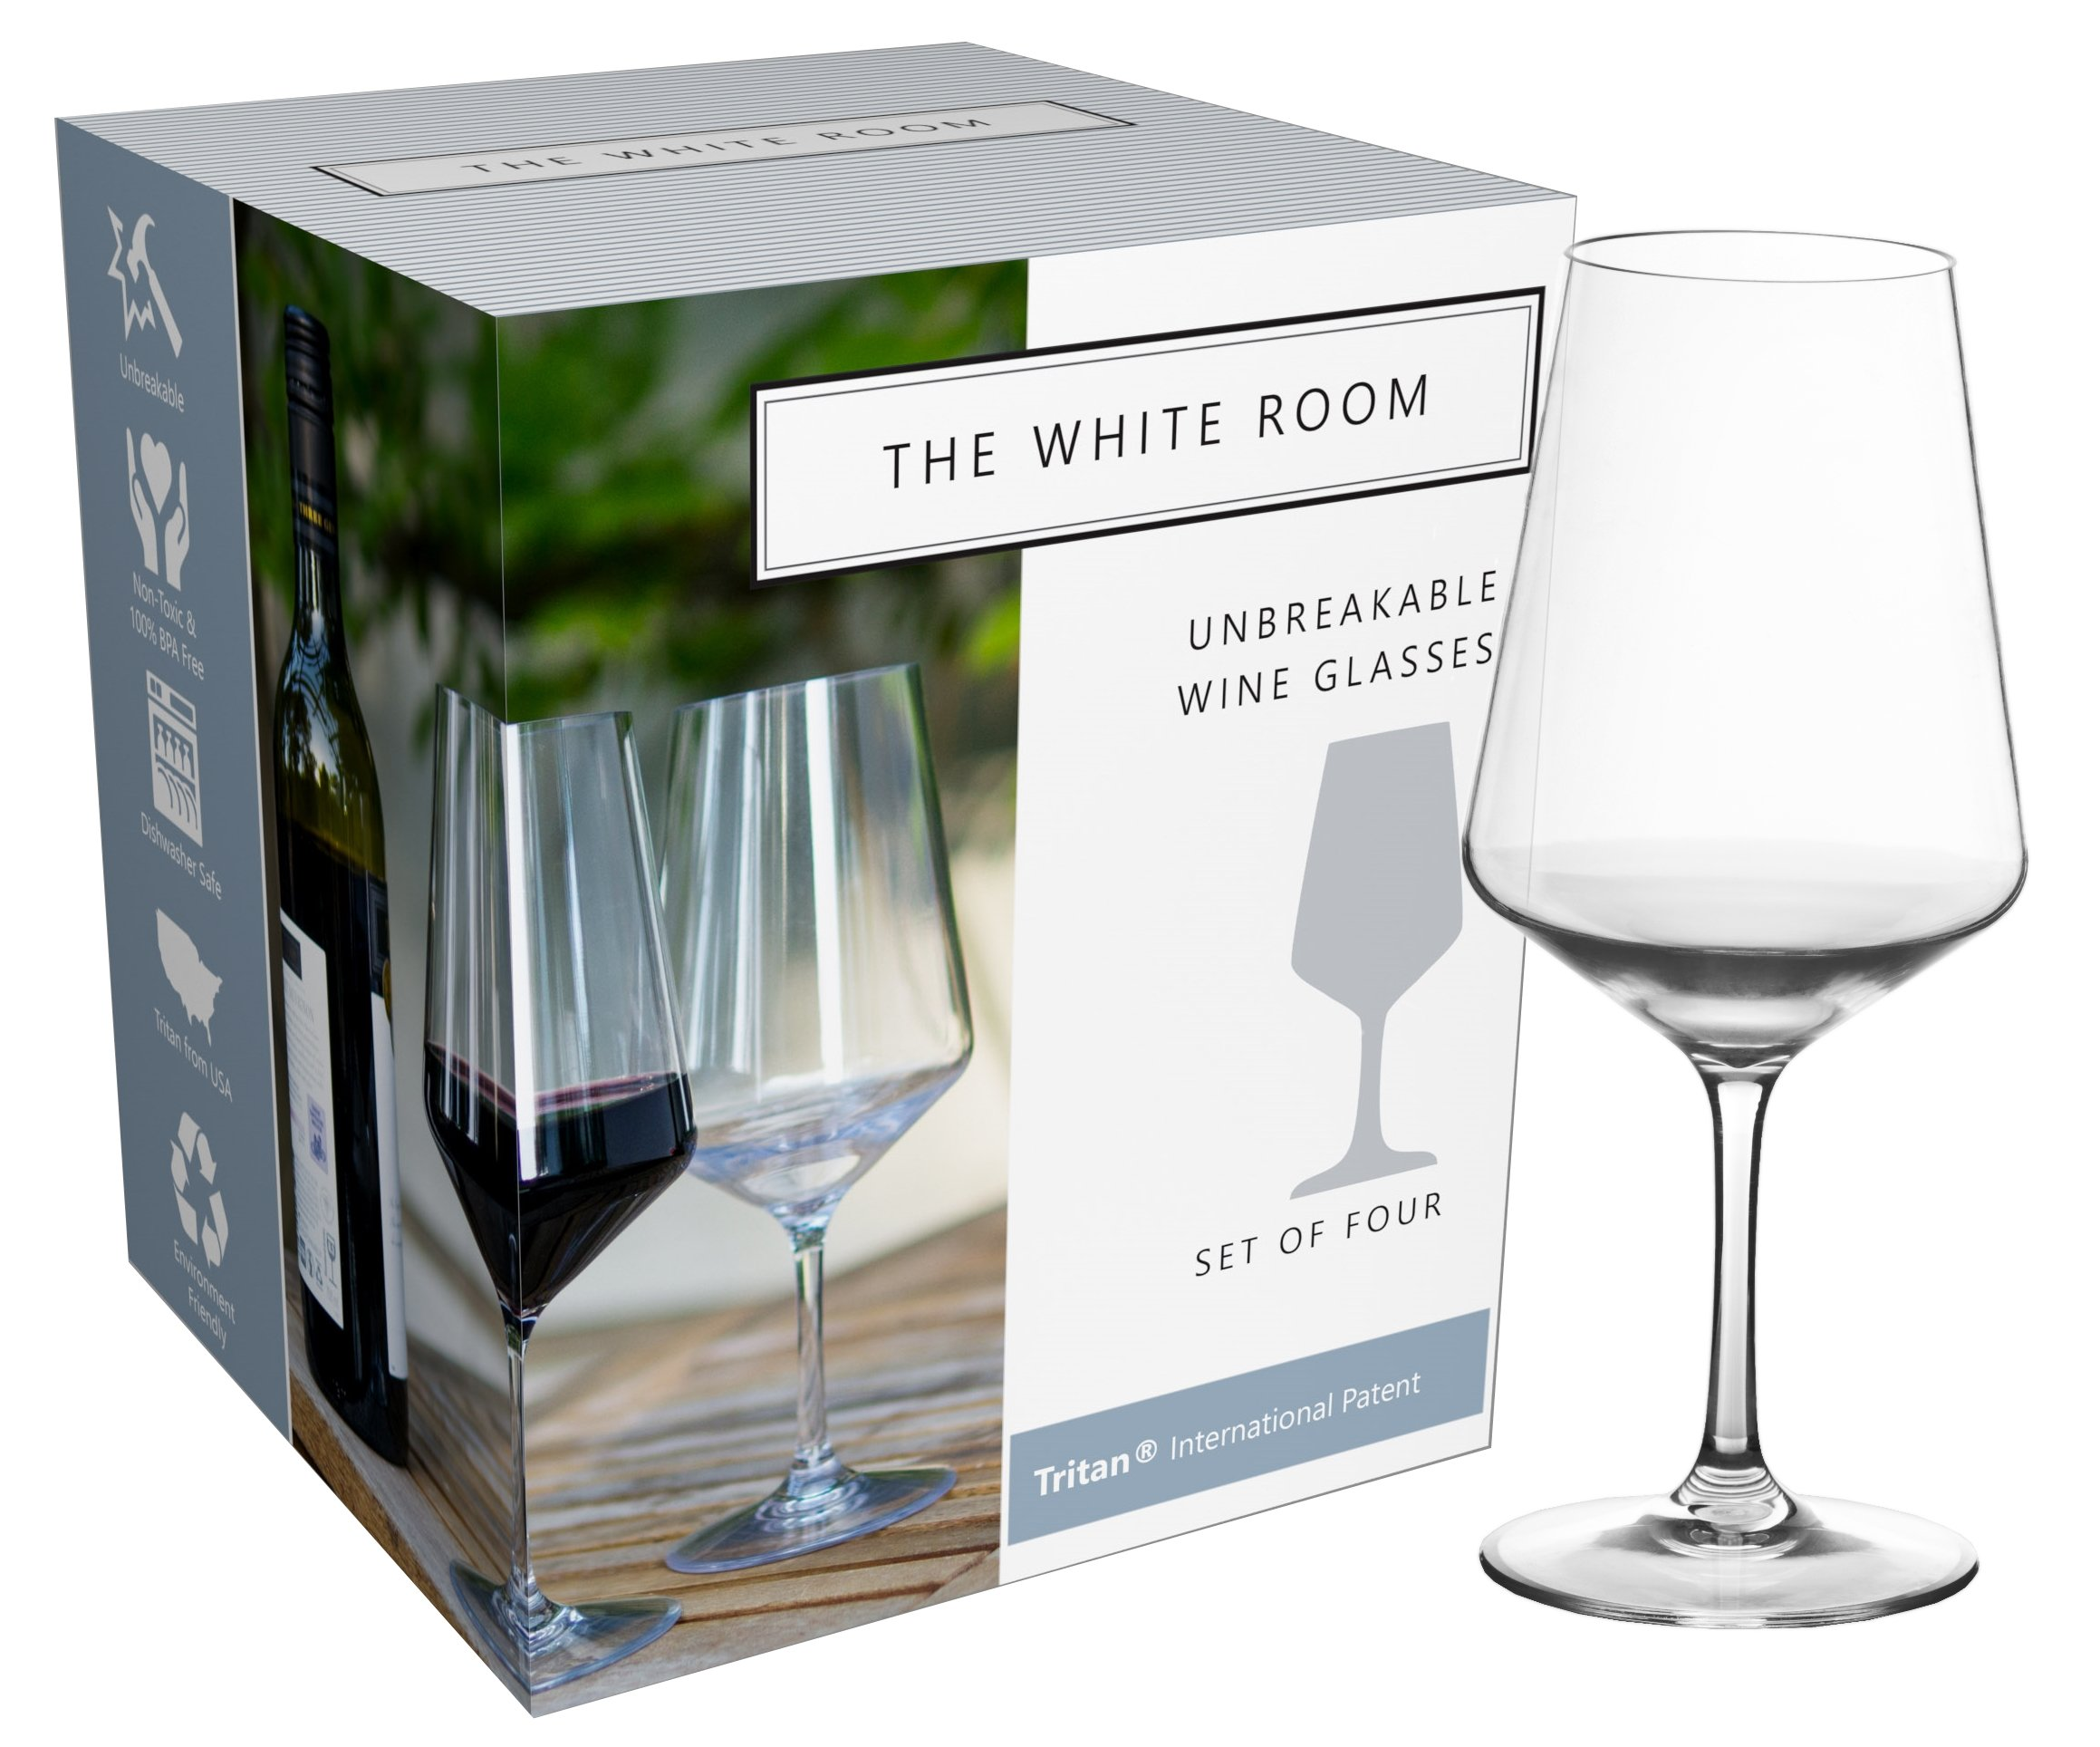 Premium Unbreakable Wine Glass Collection, 100% BPA Free Tritan Shatterproof Plastic, Dishwasher Safe, Large 22oz and Elegant Set of 4 by The White Room (Image #1)